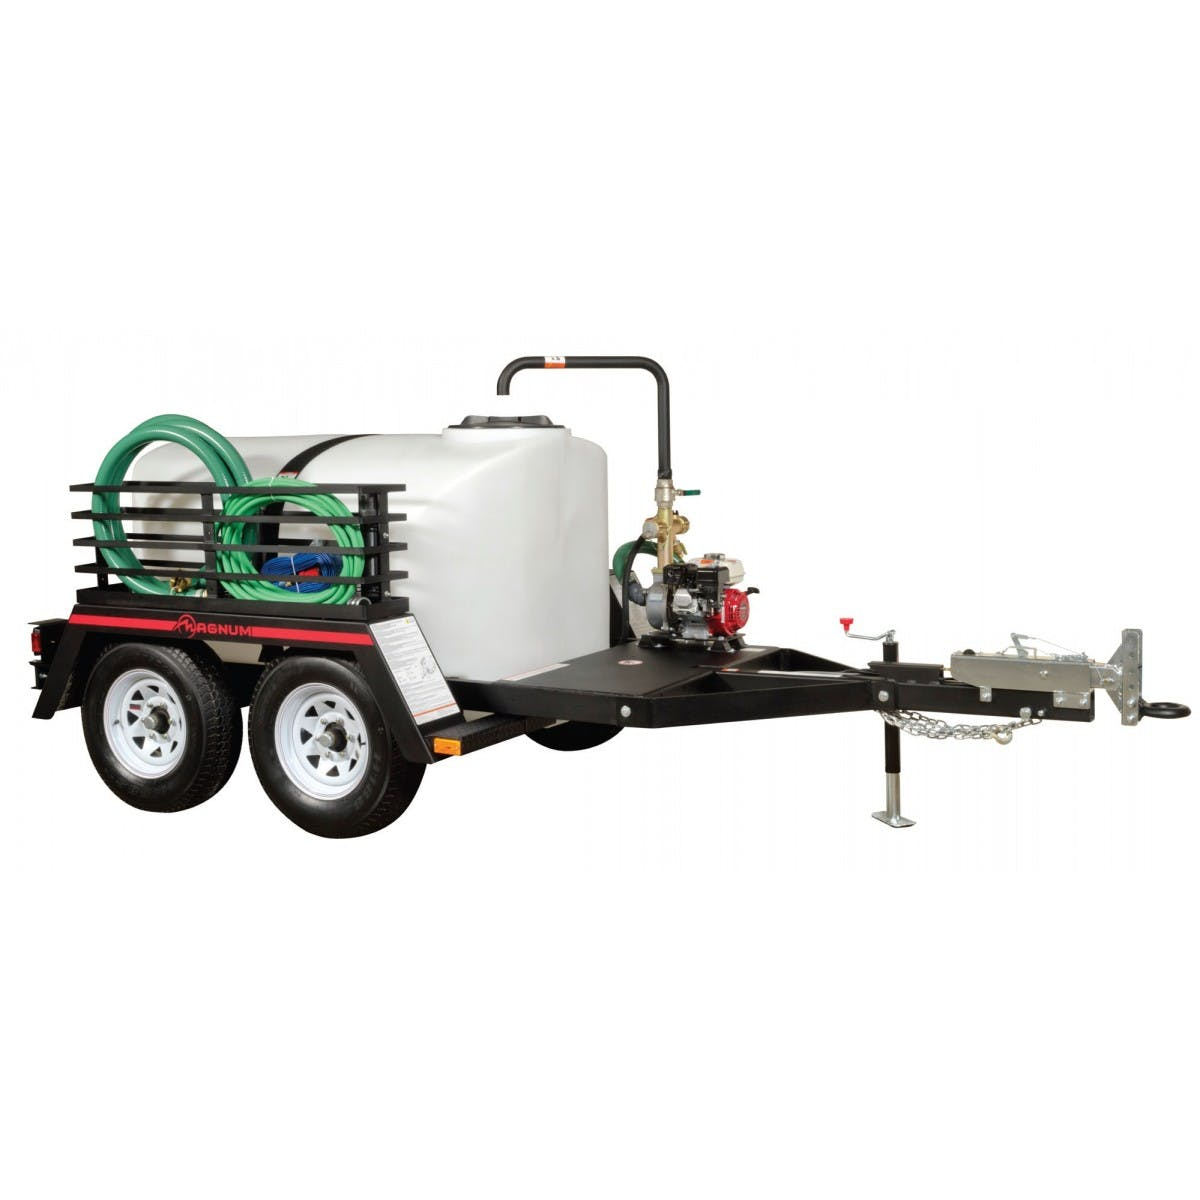 500 Gallon Water Trailer 0